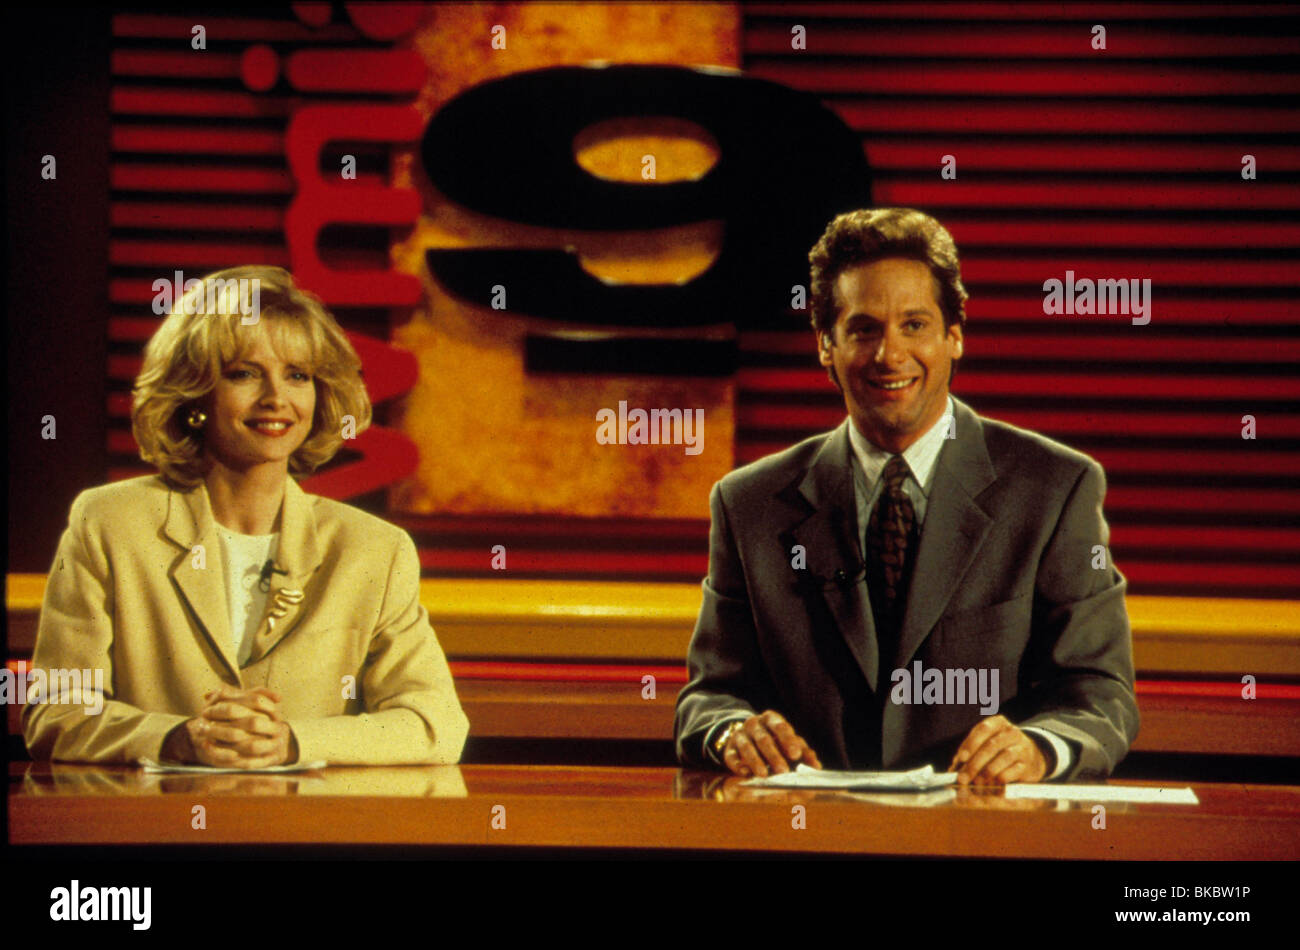 UP CLOSE AND PERSONAL (1996) MICHELLE PFEIFFER, SCOTT BRYCE UPCP 090 ...